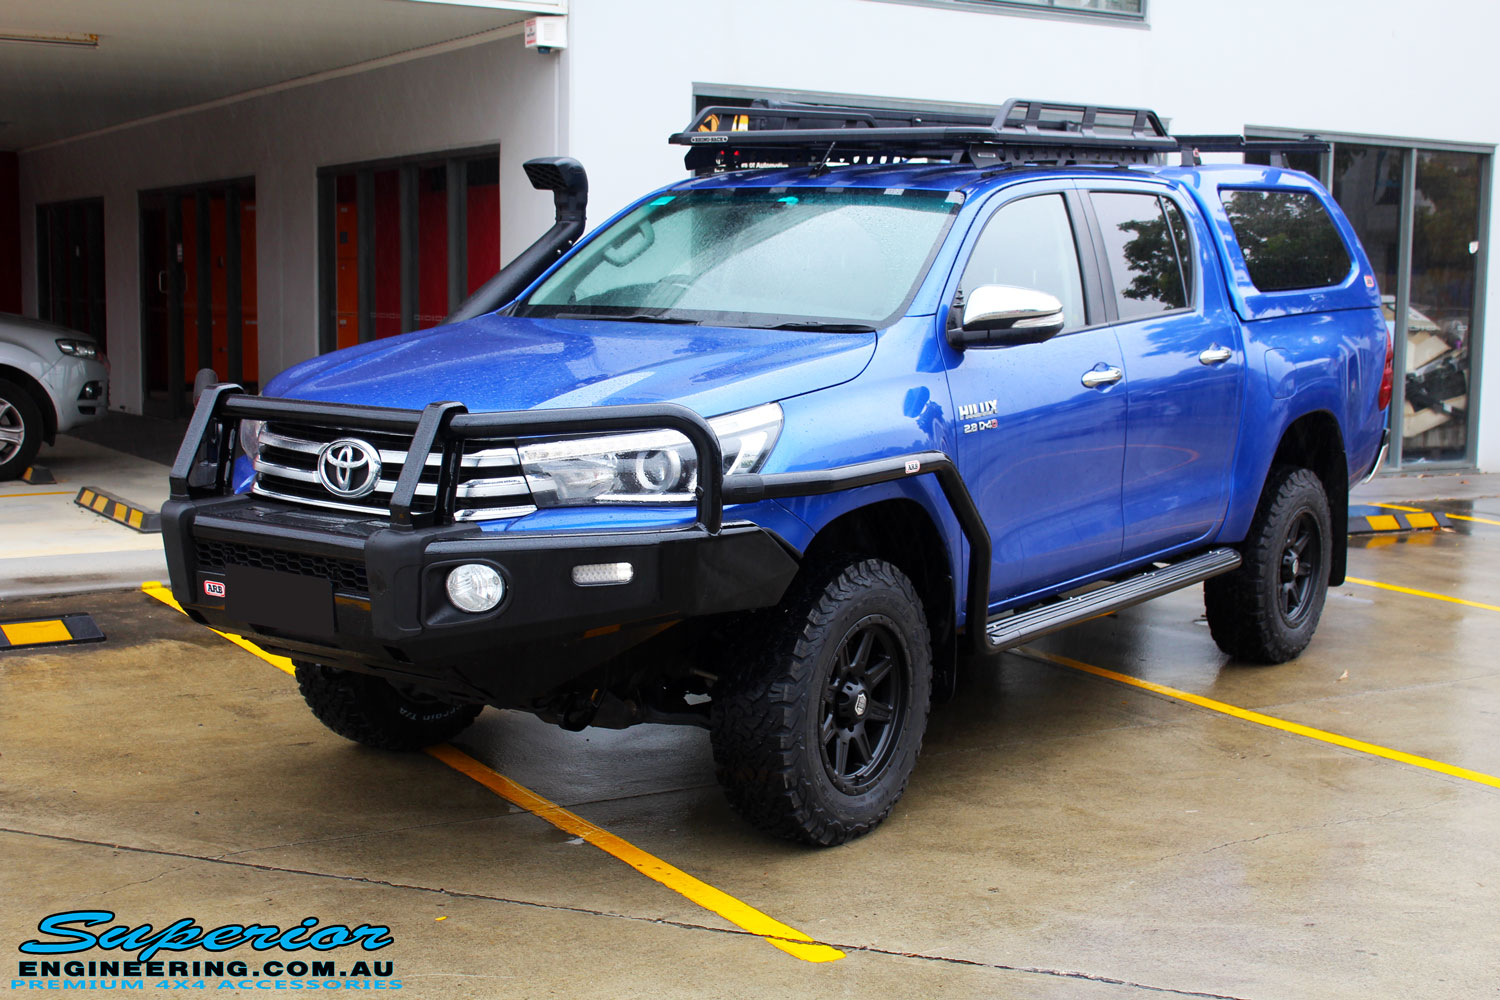 Left front side view of a Blue Toyota Revo Hilux Dual Cab after fitment of a EFS 40mm Lift Kit and Wheel/Tyre Package